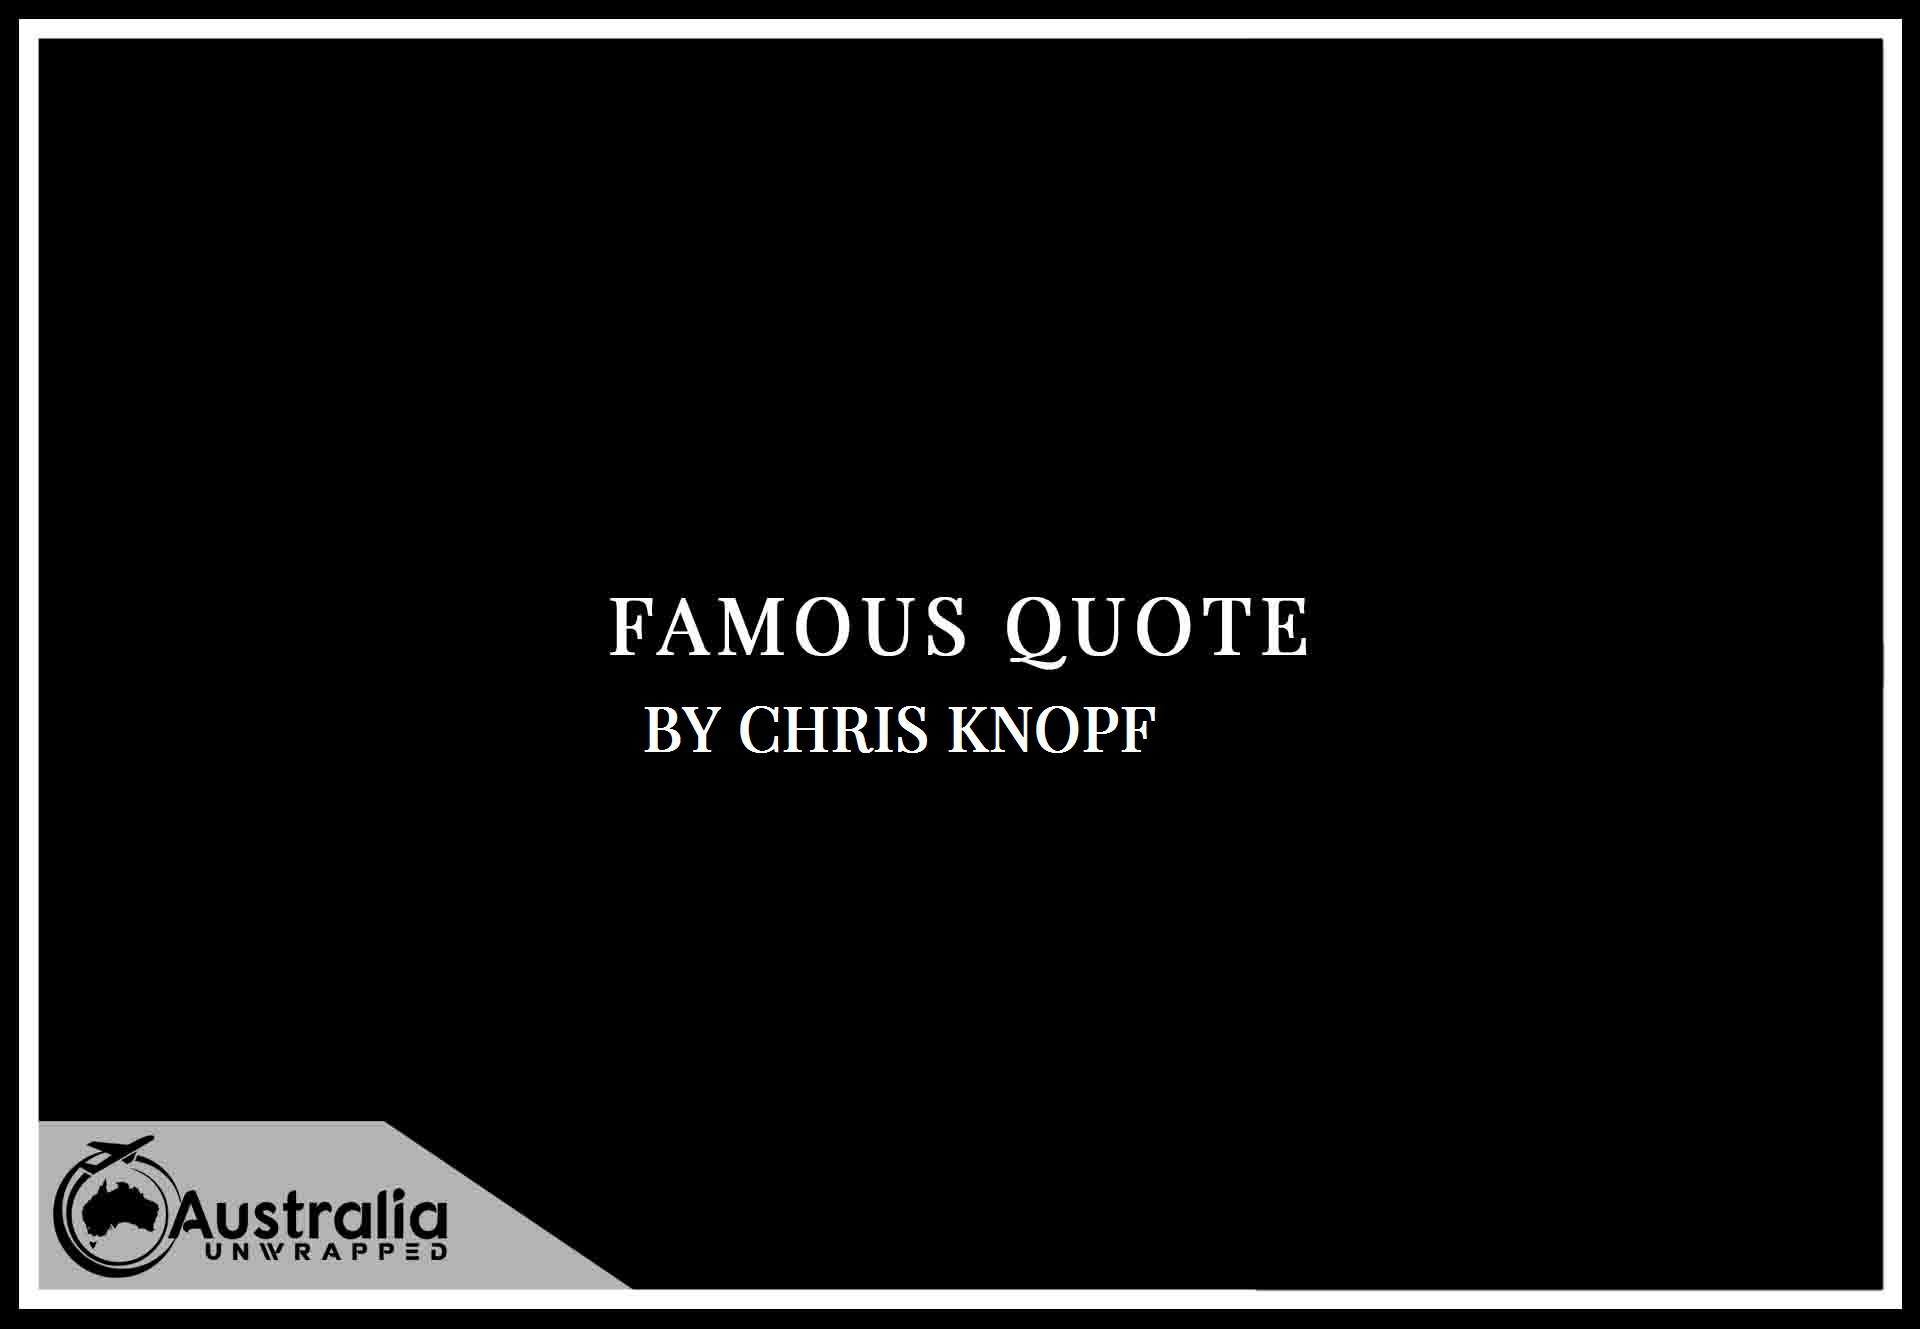 Chris Knopf's Top 1 Popular and Famous Quotes